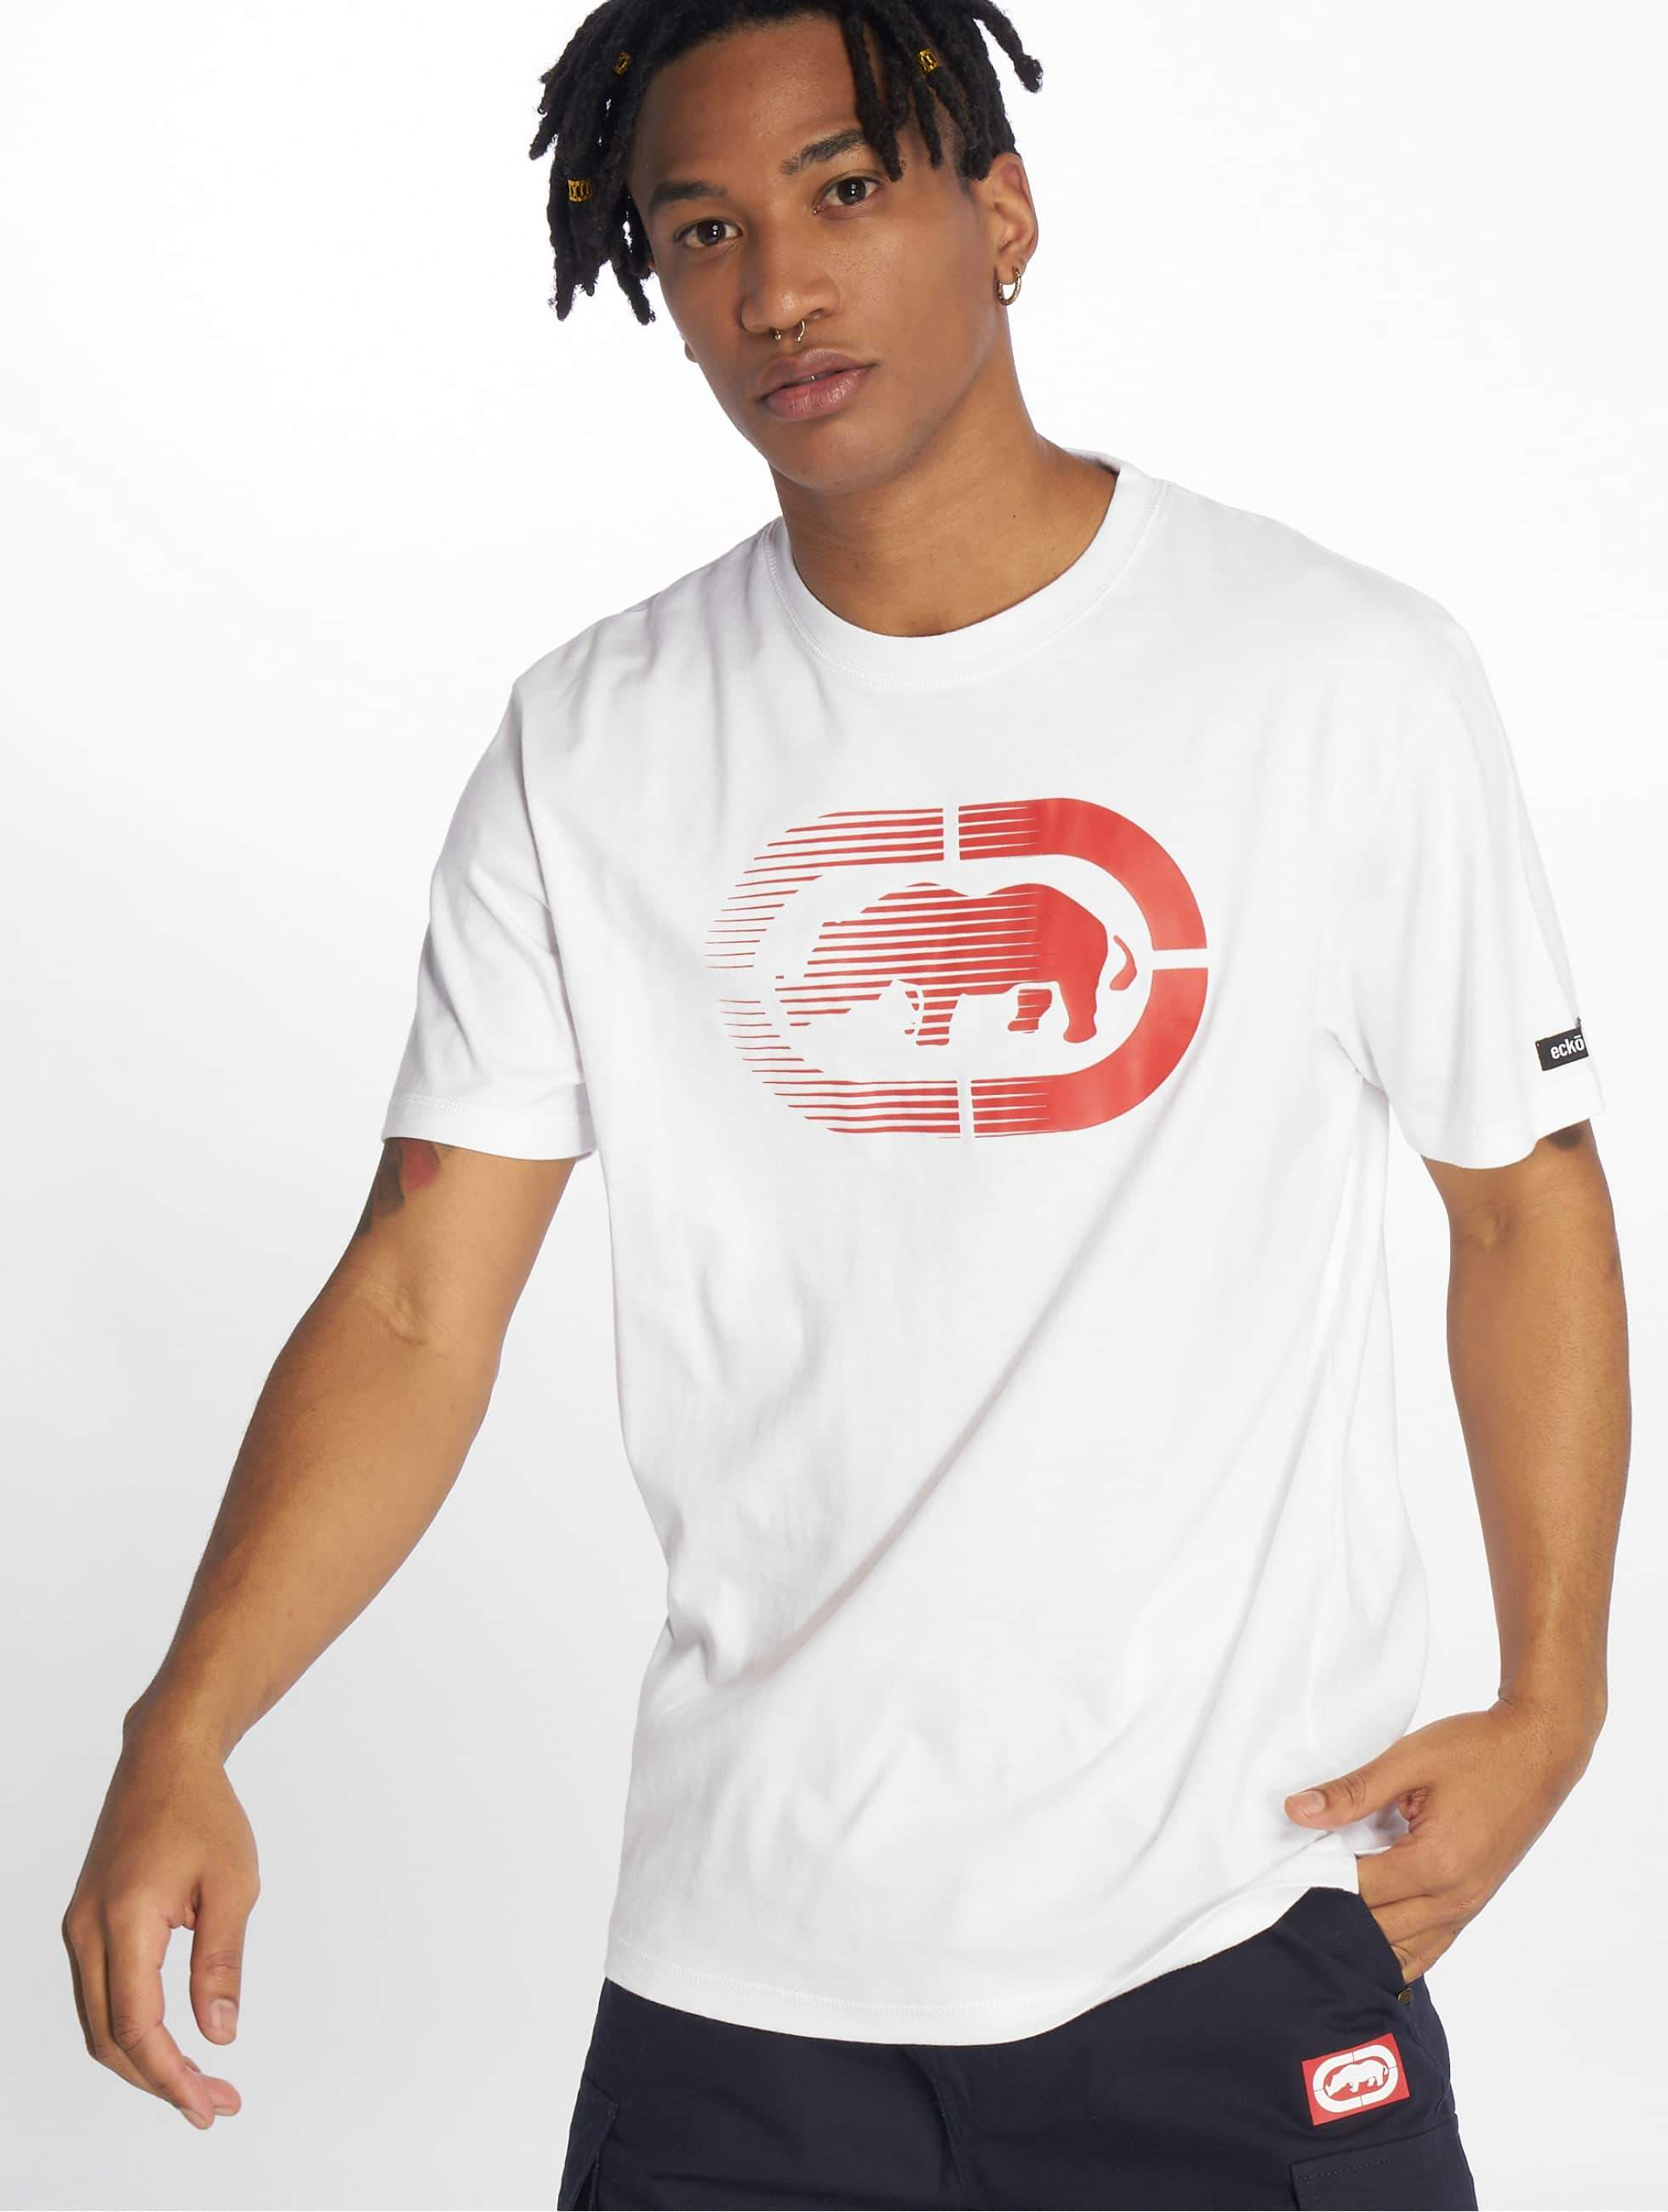 Ecko Unltd. / T-Shirt 5050 in white 2XL